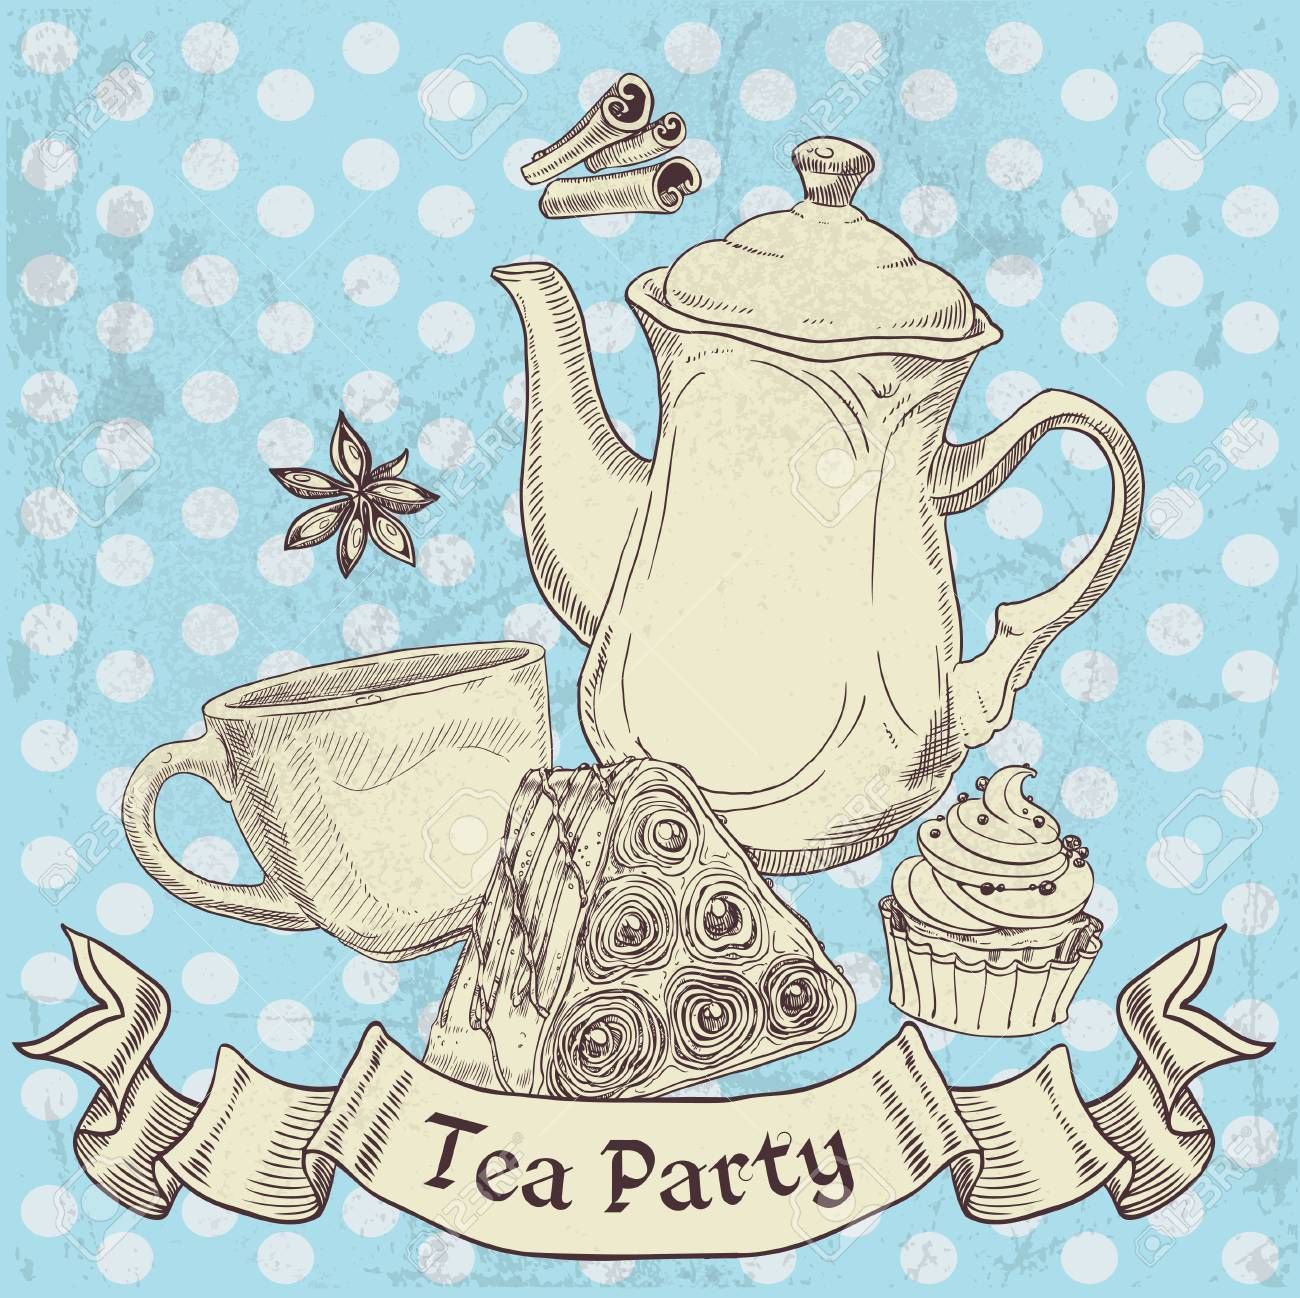 Vintage grunge banner sweets and tea - tea party Stock Vector - 20762033